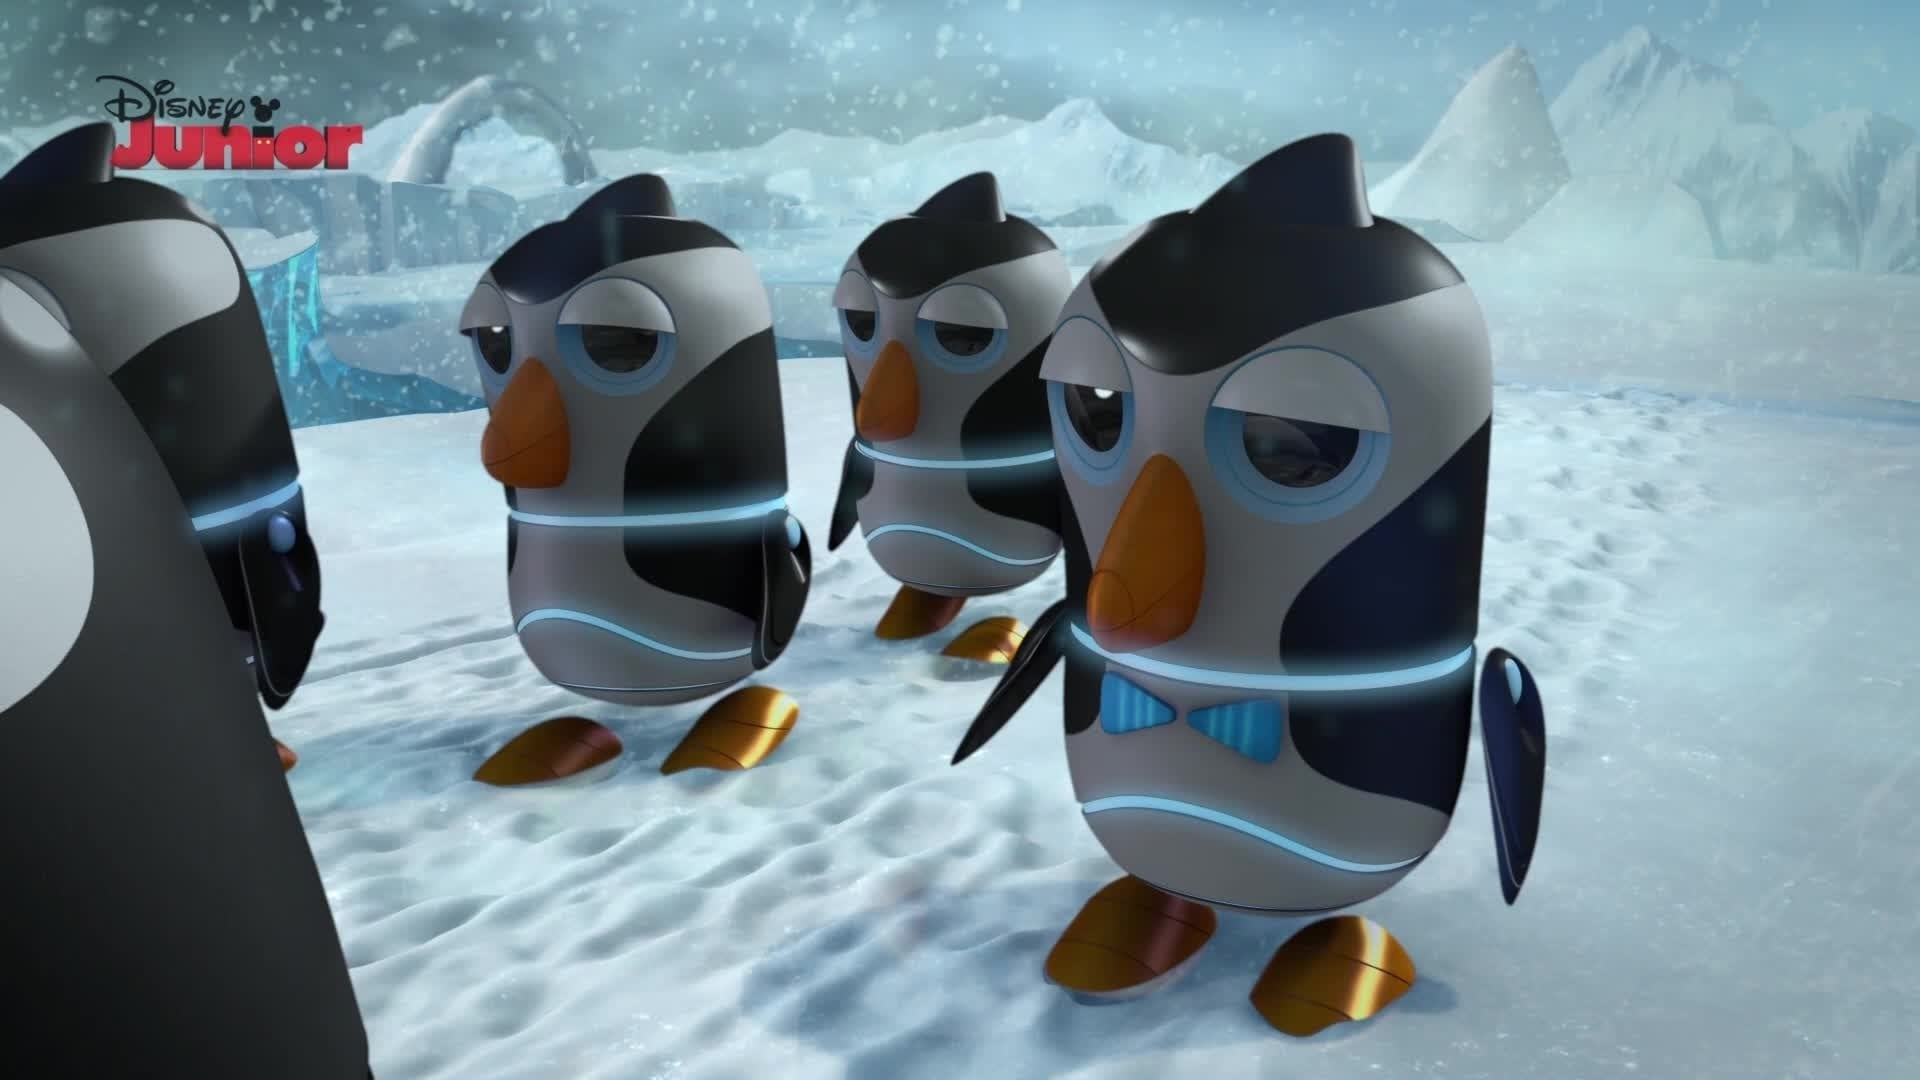 March of the Robo-Penguins